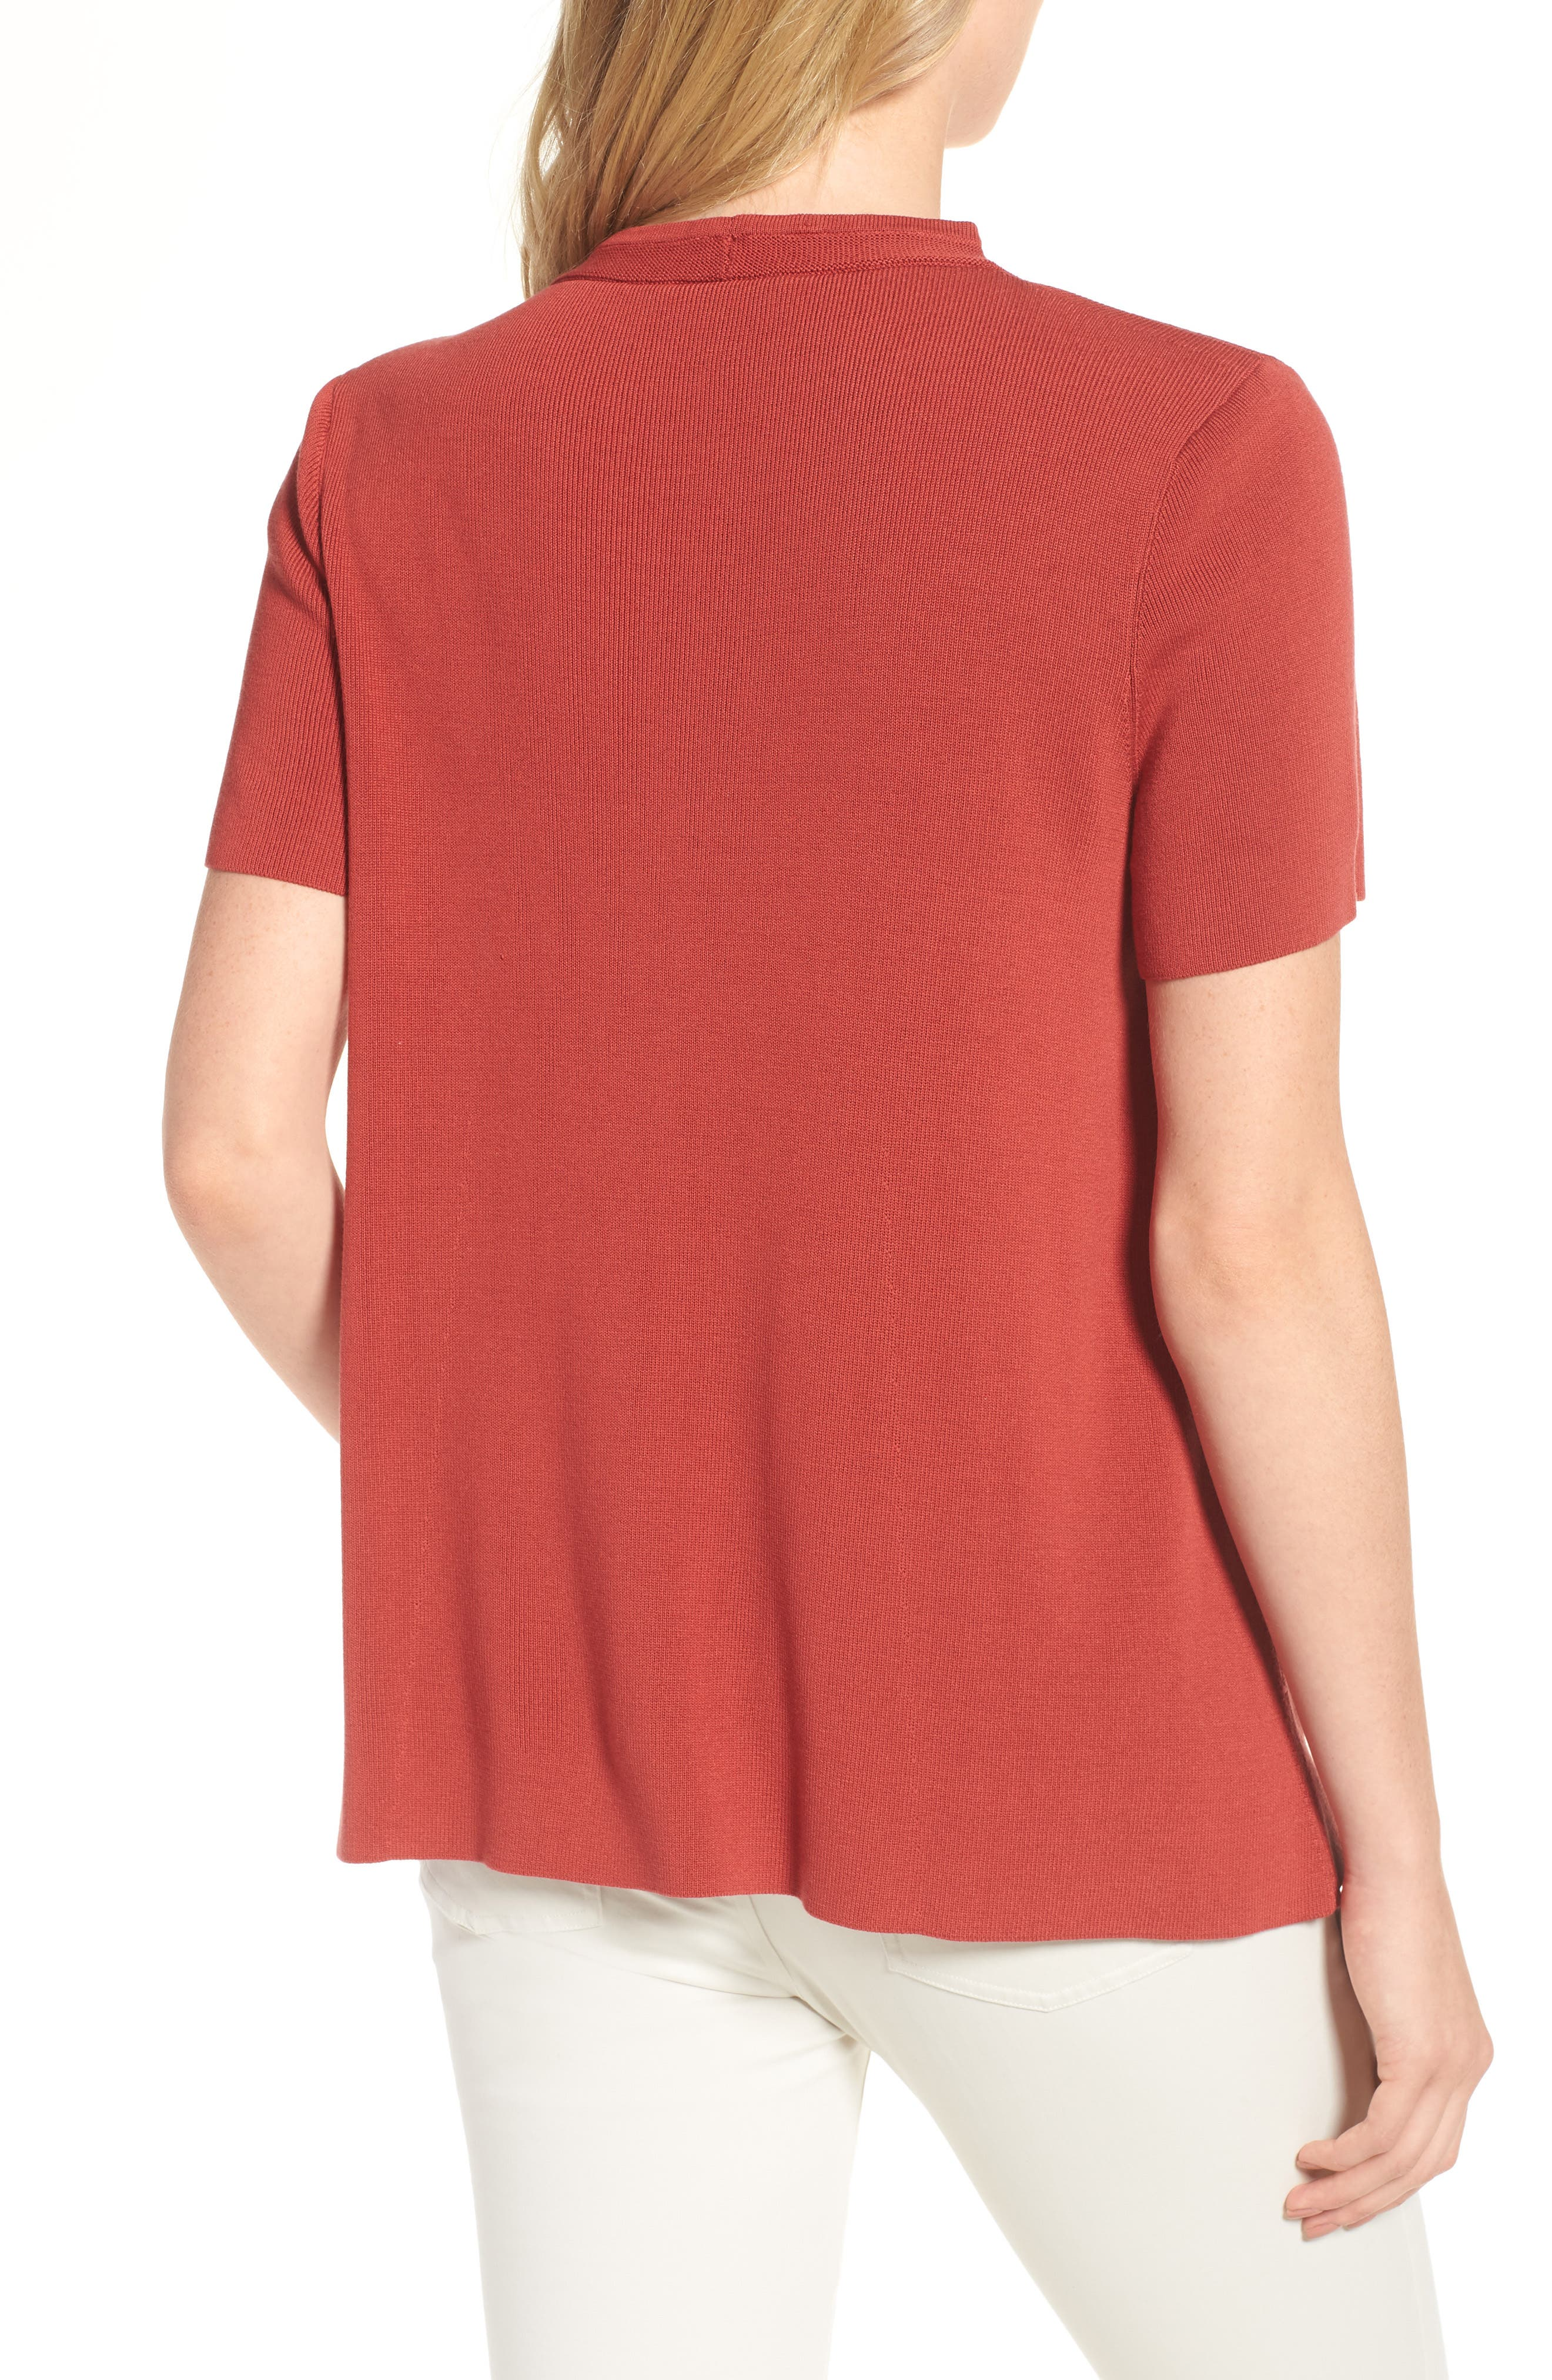 Tencel<sup>®</sup> Lyocell Knit Sweater,                             Alternate thumbnail 2, color,                             Coral Rose